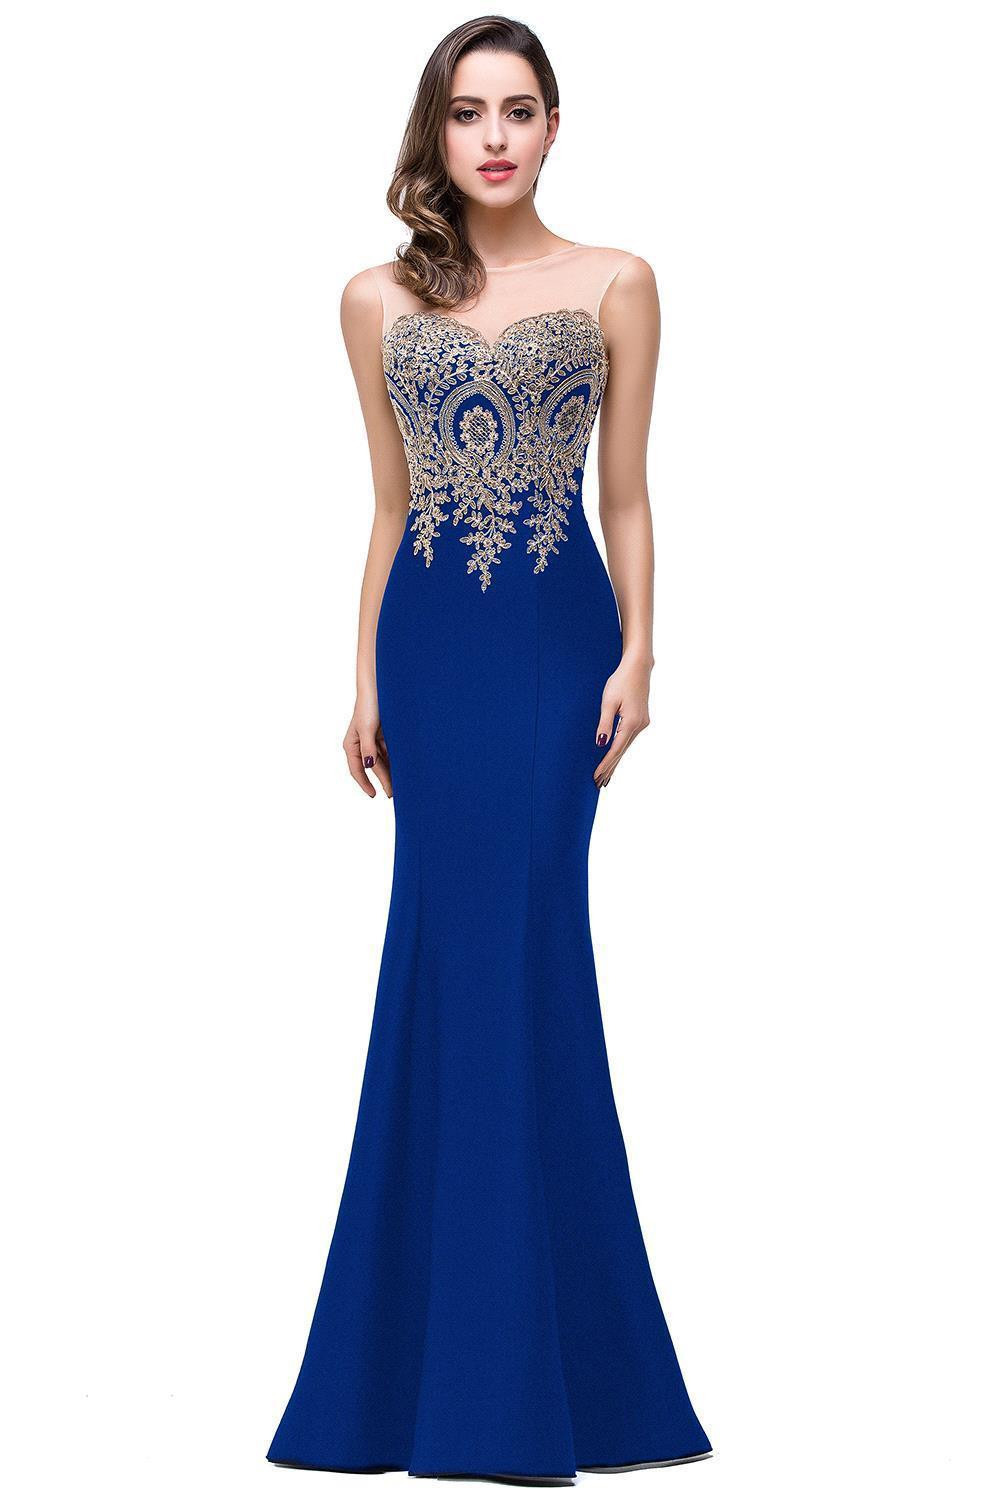 Robe demoiselle dhonneur 11 colors lace mermaid mint green navy robe demoiselle dhonneur 11 colors lace mermaid mint green navy blue bridesmaid dresses long 2017 vestido madrinha casamento in bridesmaid dresses from ombrellifo Image collections